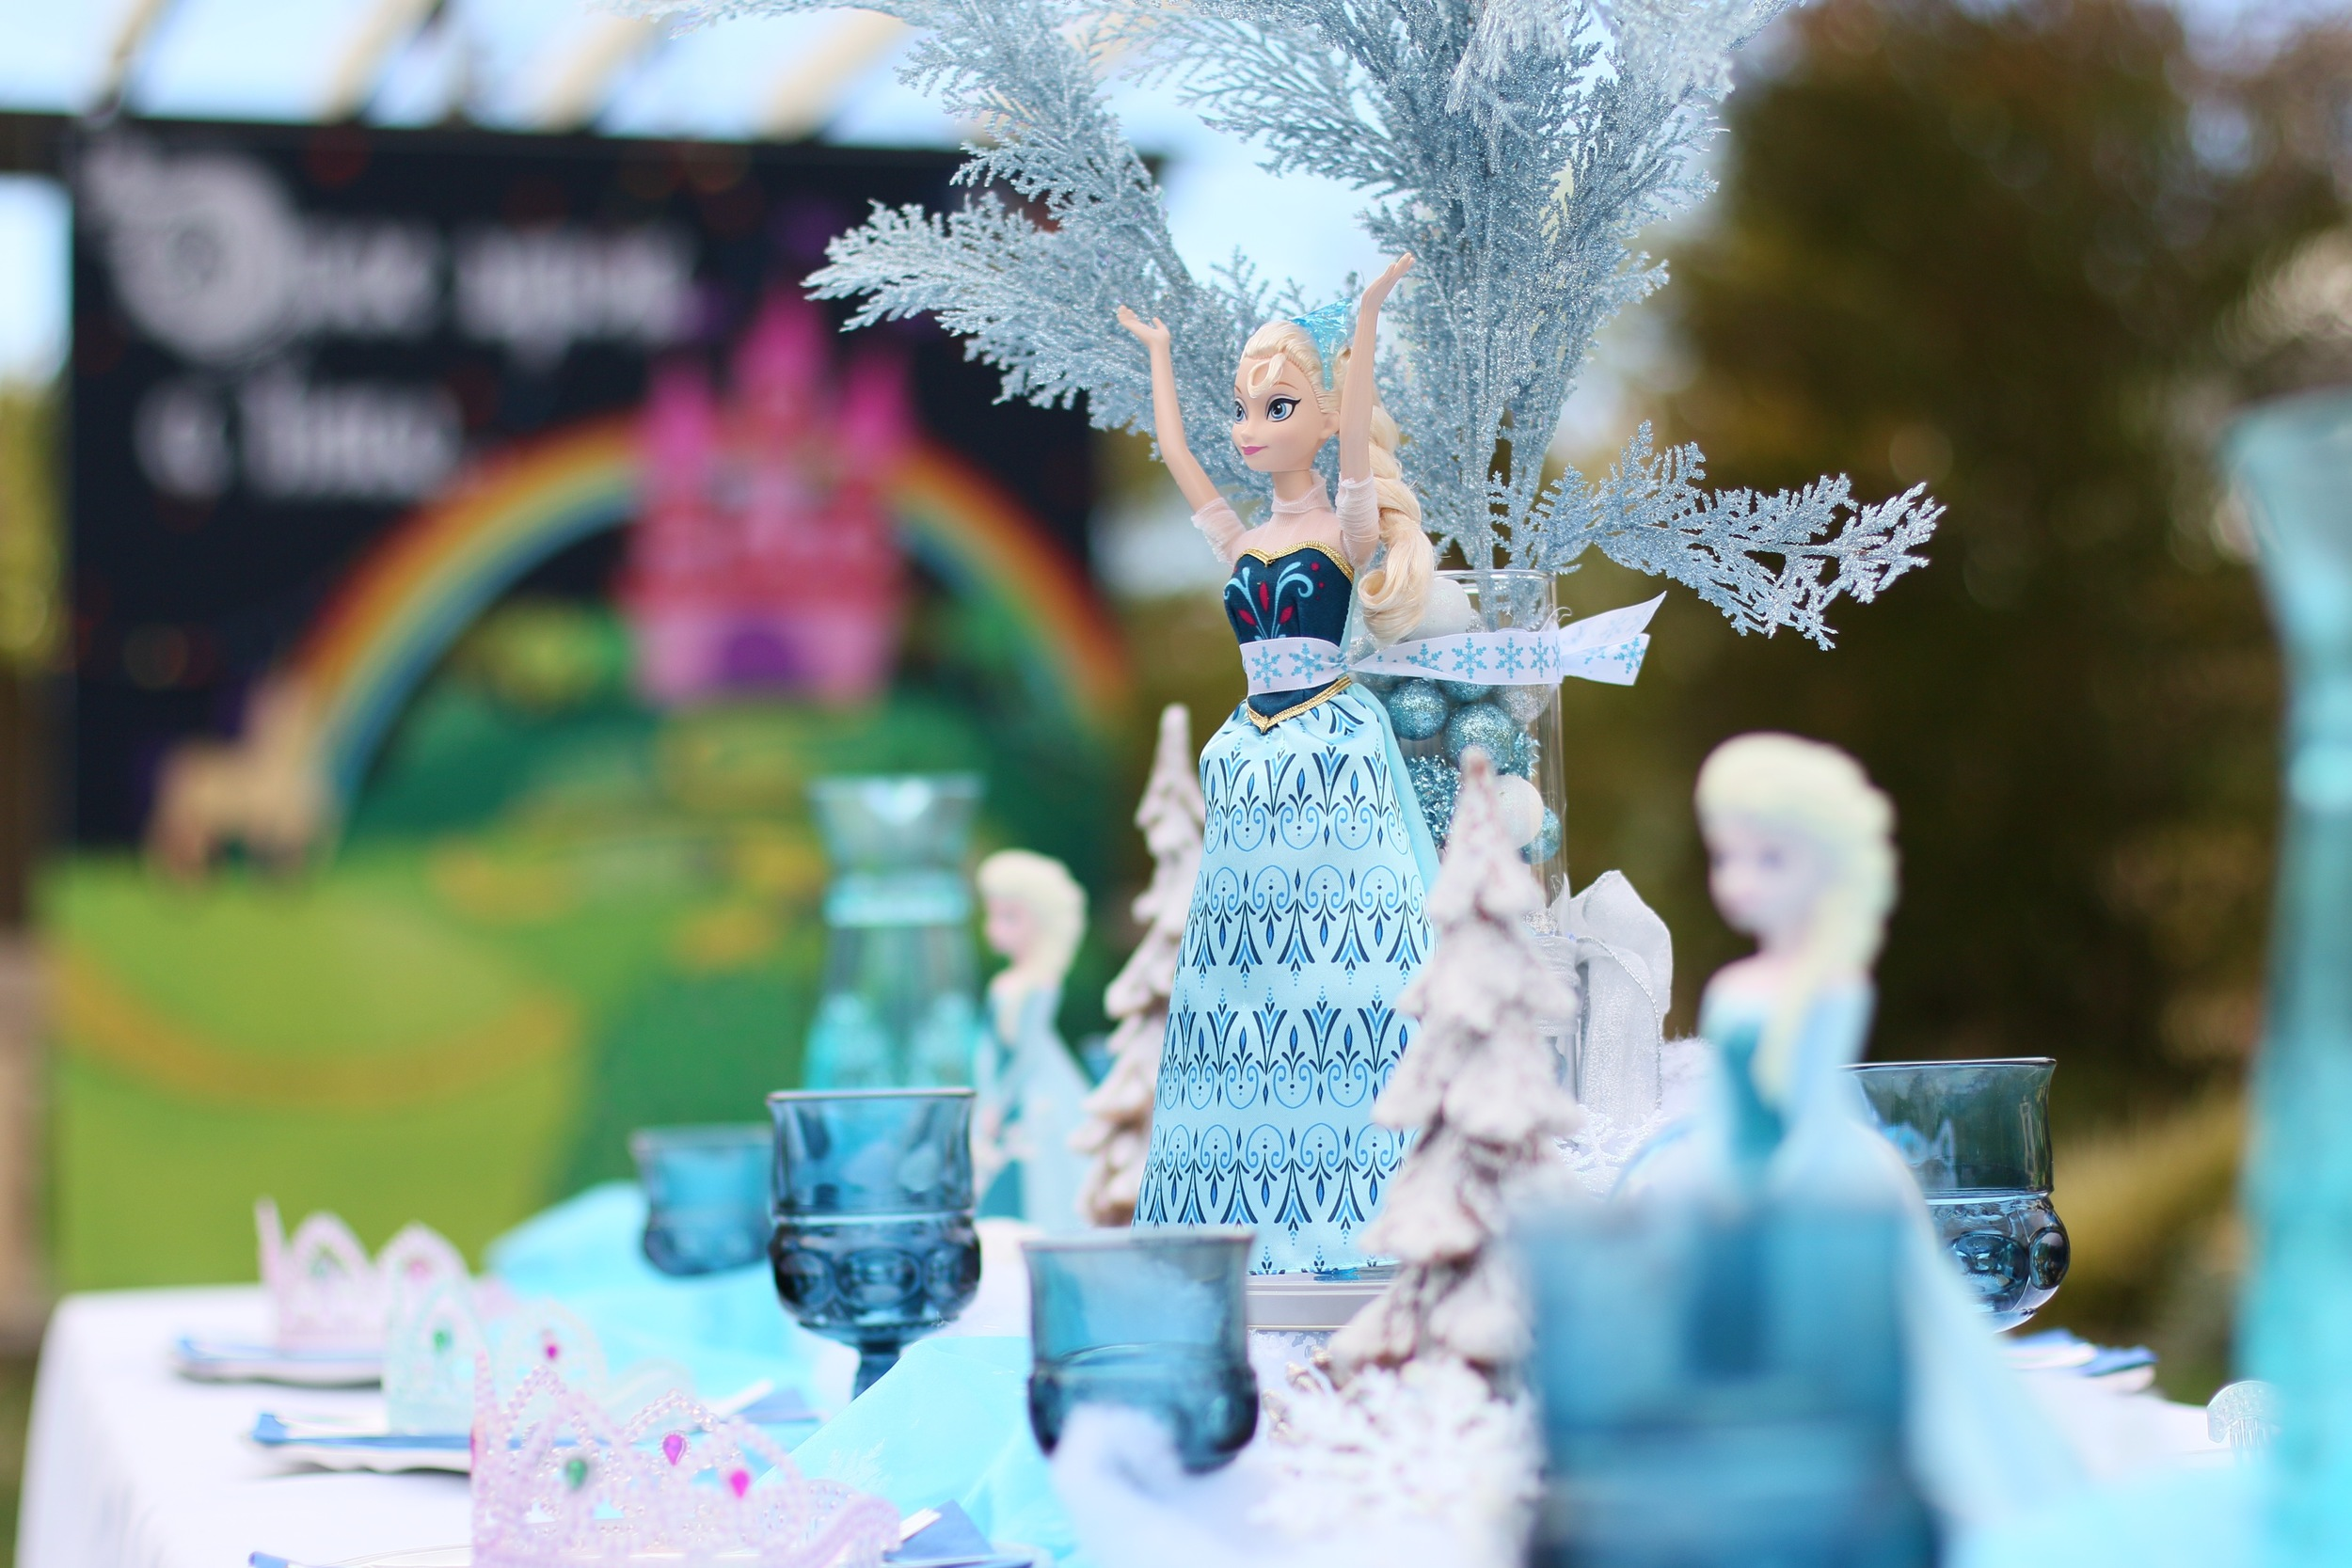 Amazing Frozen Centerpieces for rent! @inJOYtheParty